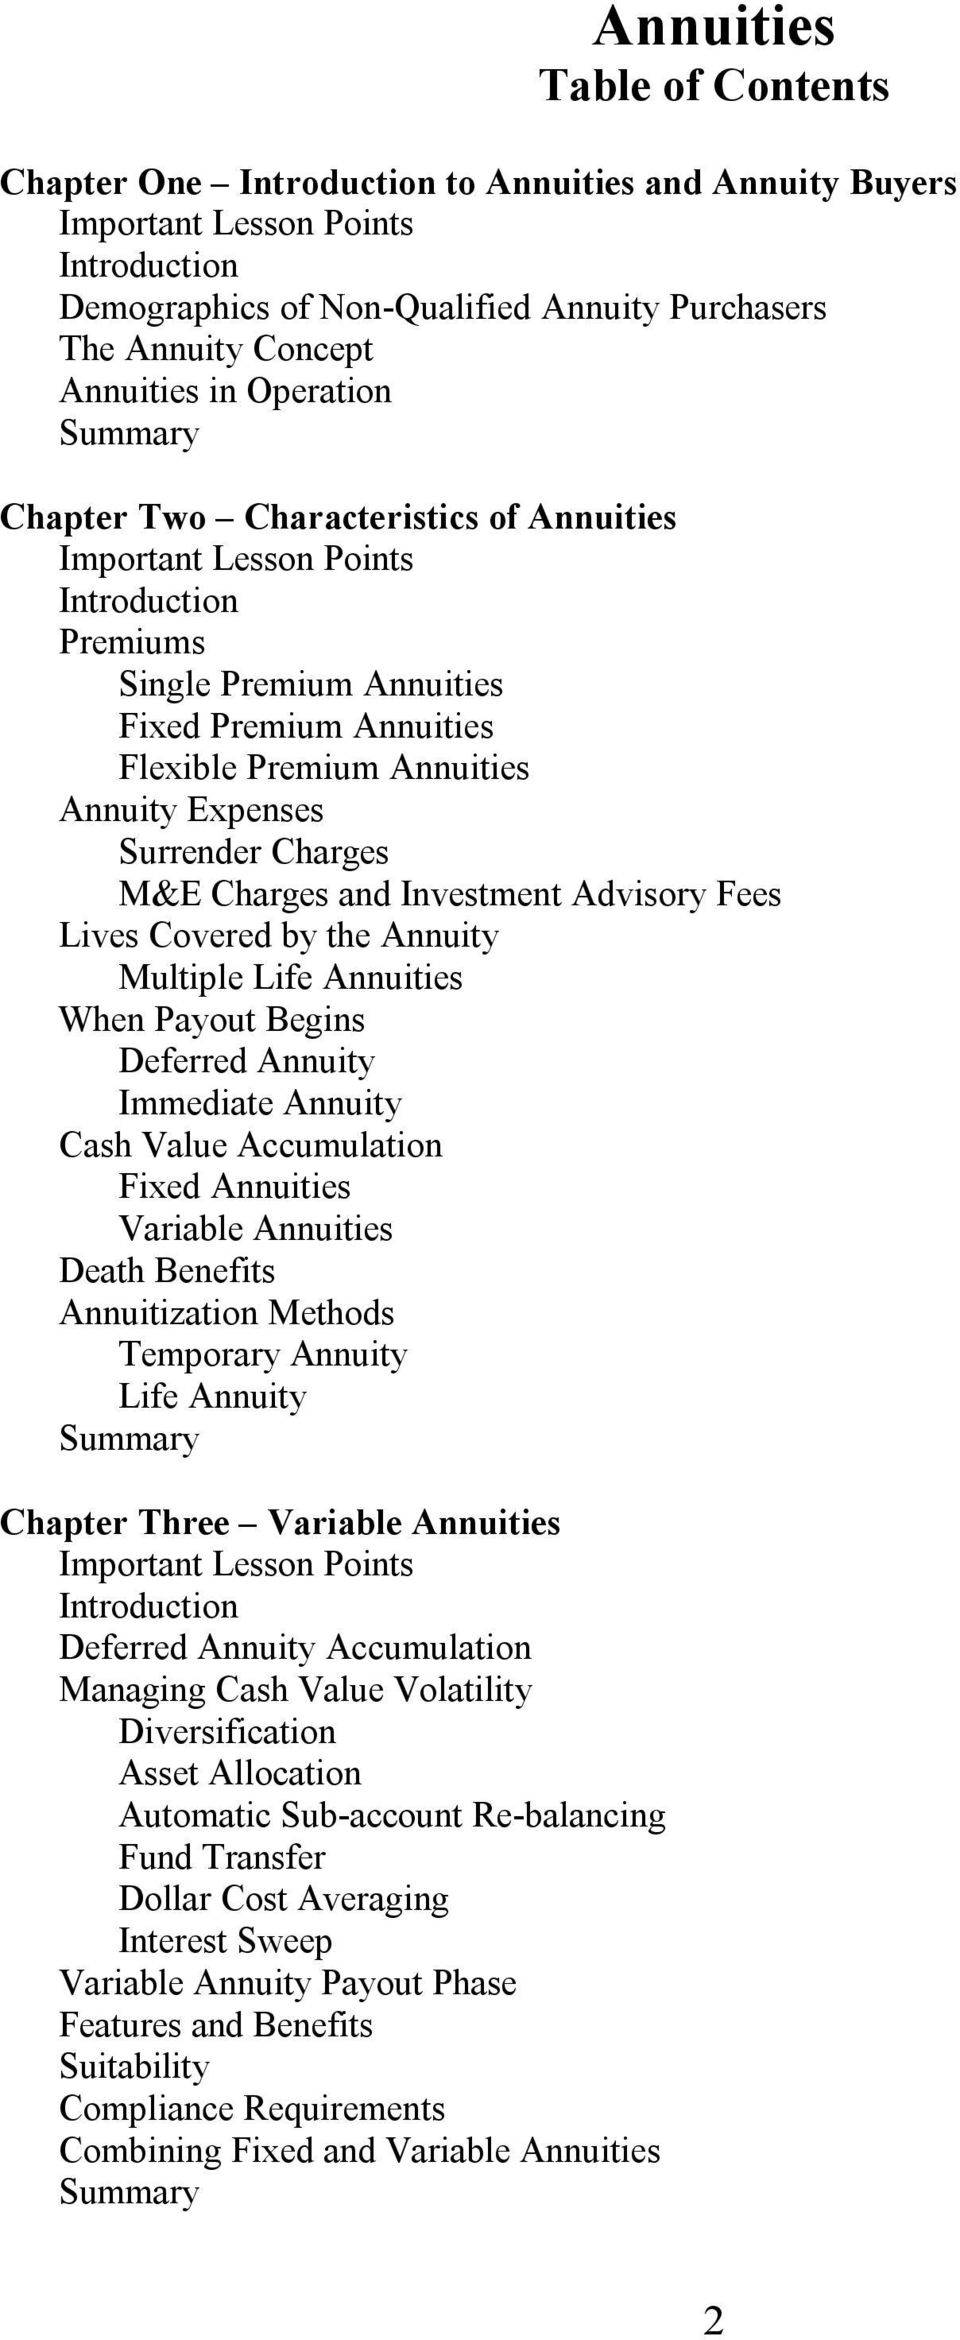 Annuity Expenses Surrender Charges M&E Charges and Investment Advisory Fees Lives Covered by the Annuity Multiple Life Annuities When Payout Begins Deferred Annuity Immediate Annuity Cash Value